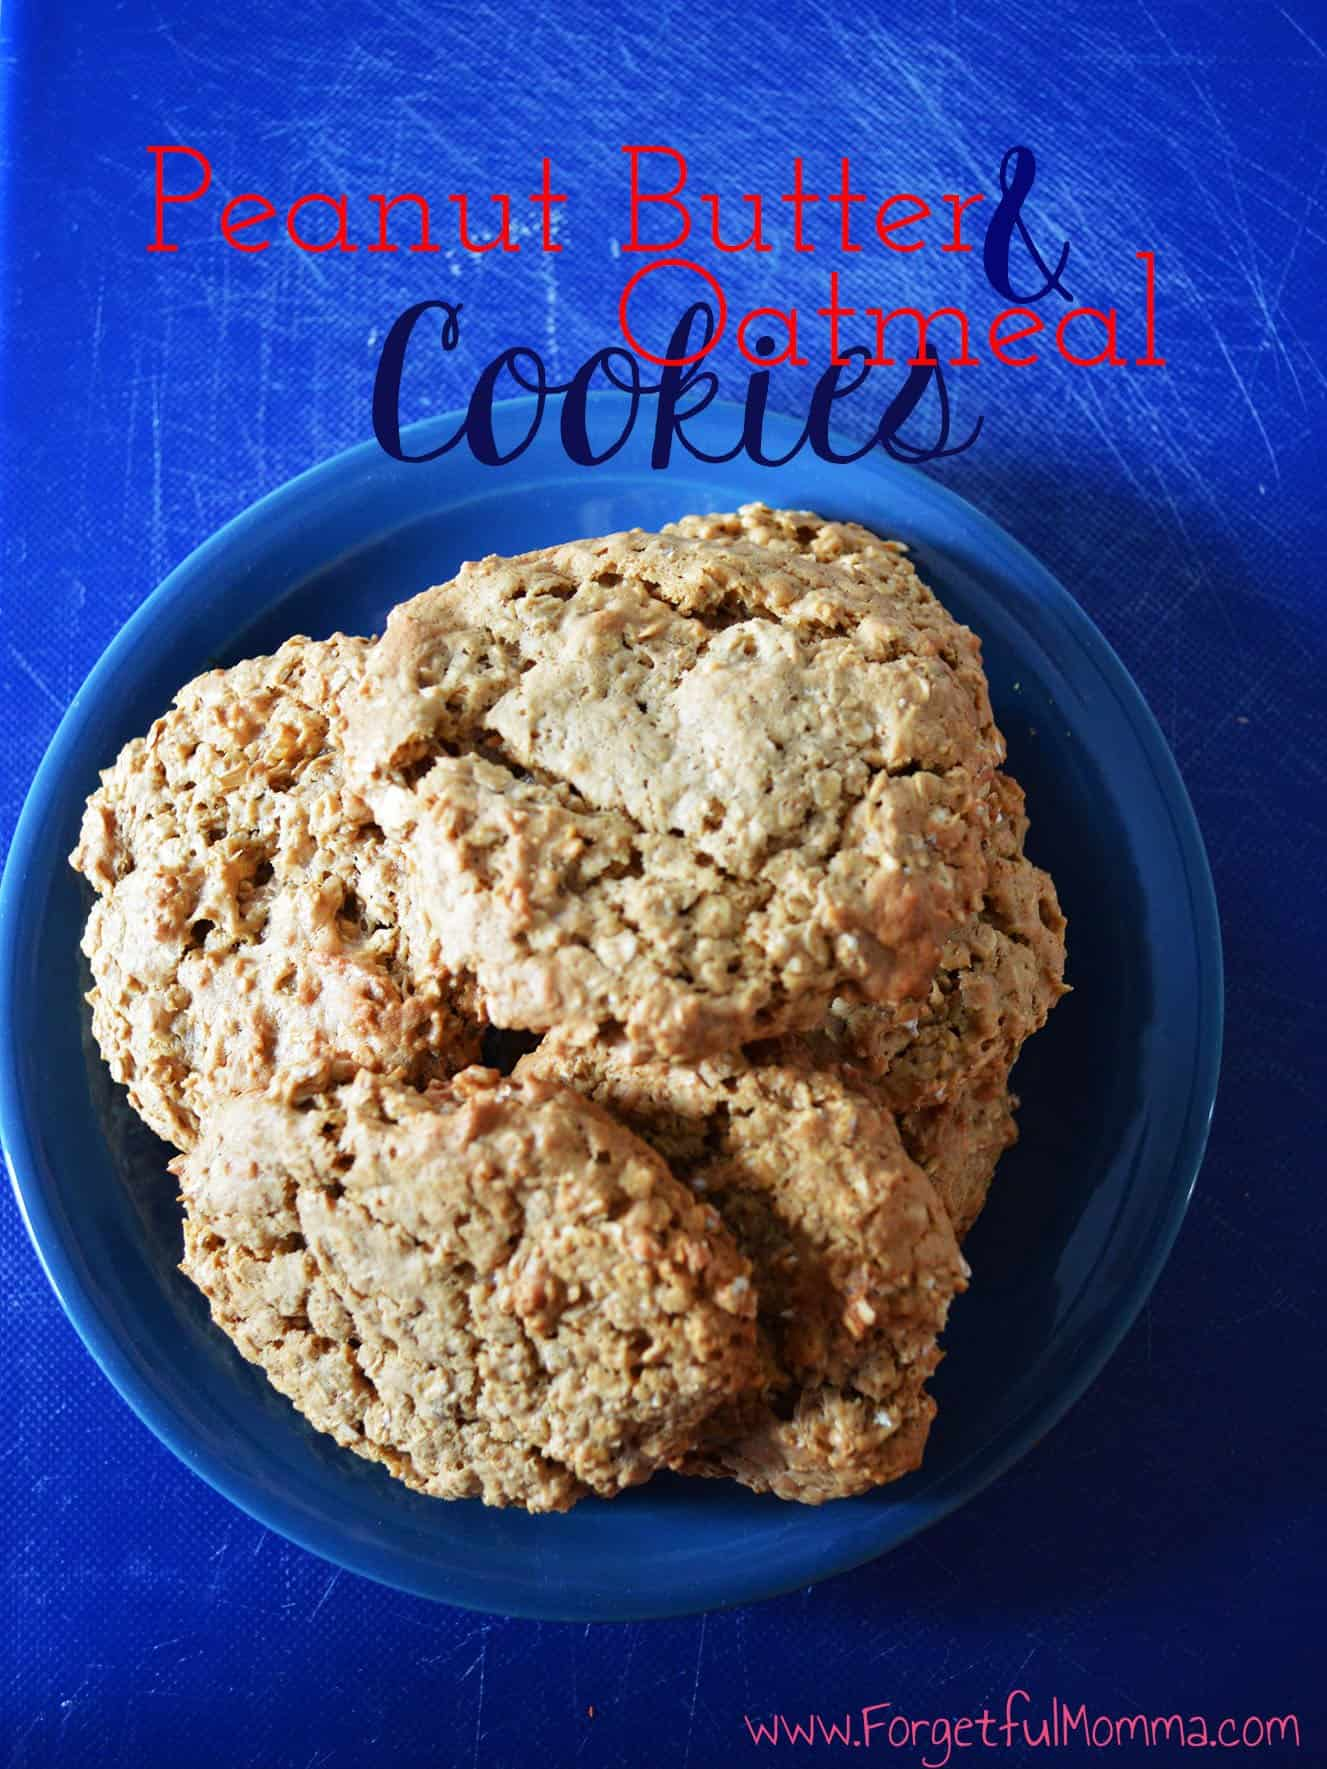 Peanut Butter & Oatmeal Cookies